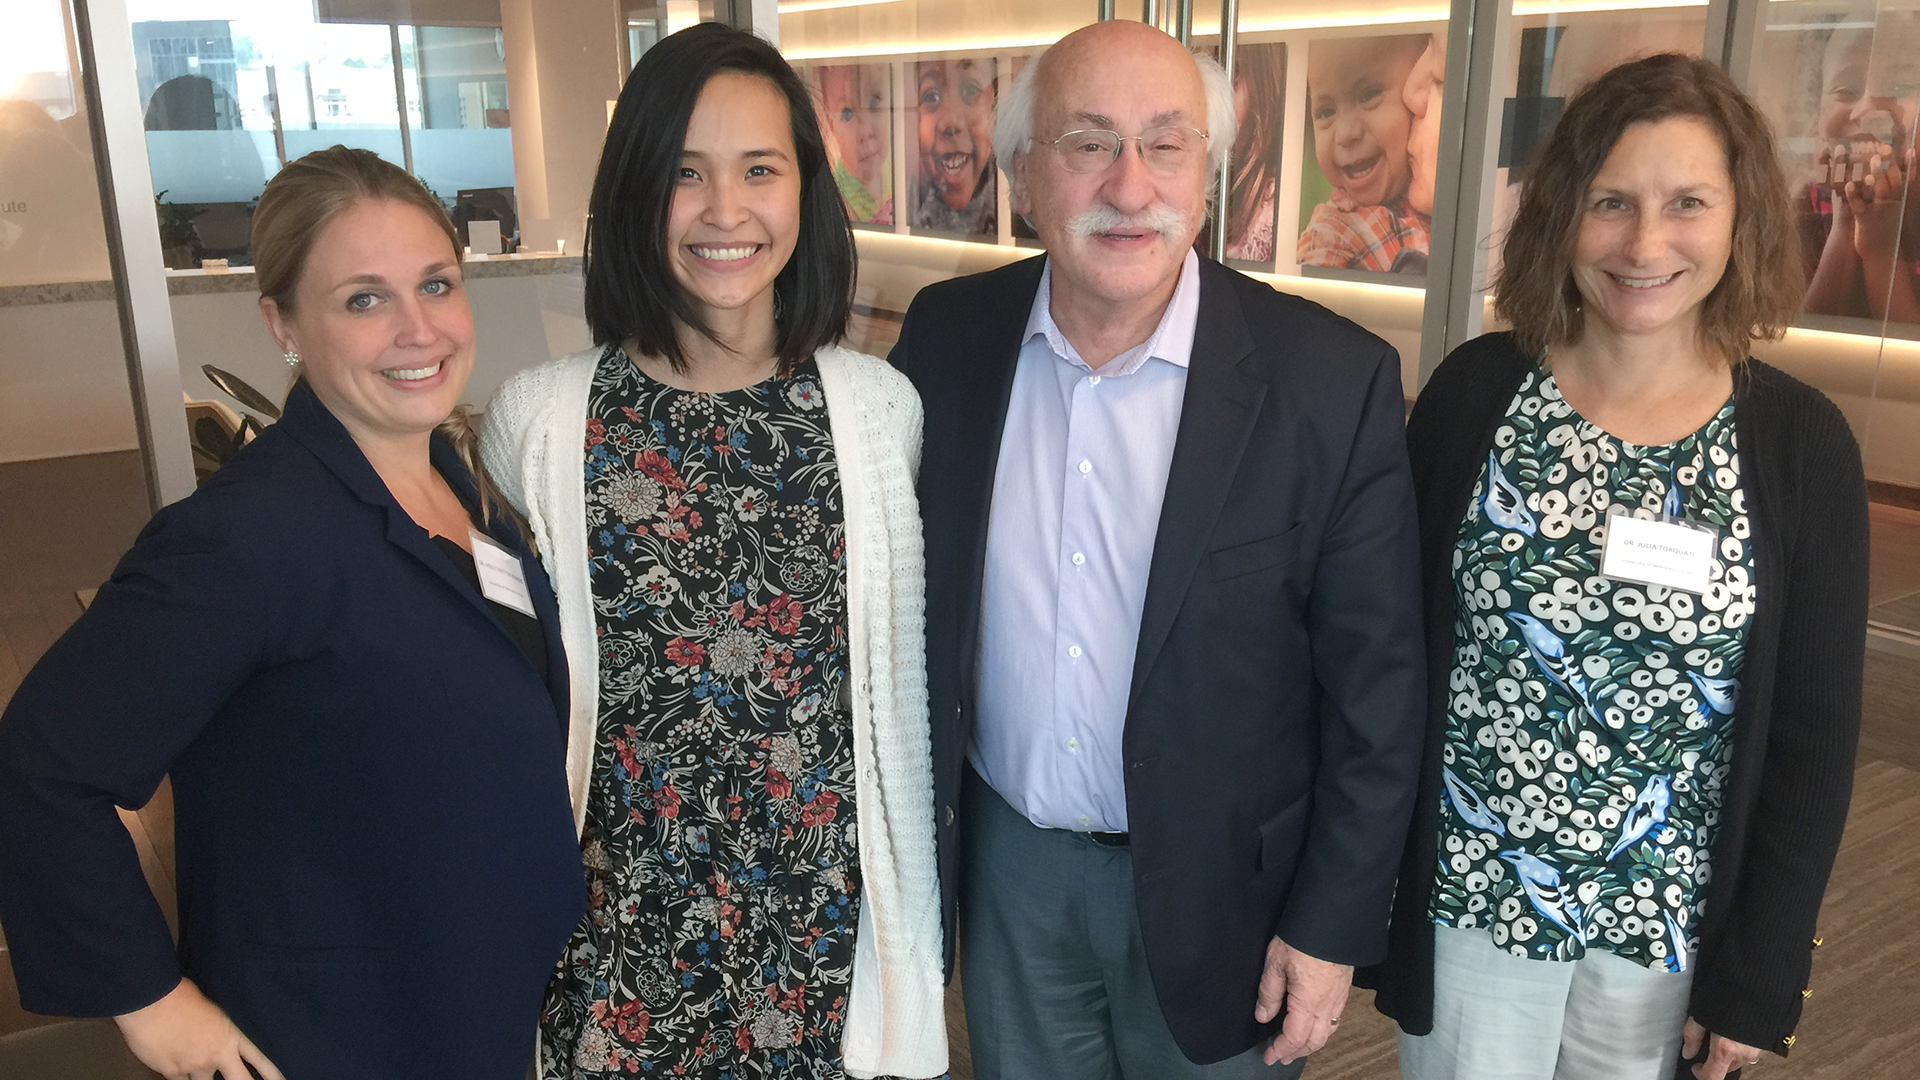 Buffett Institute award supports Husker's research into mindfulness